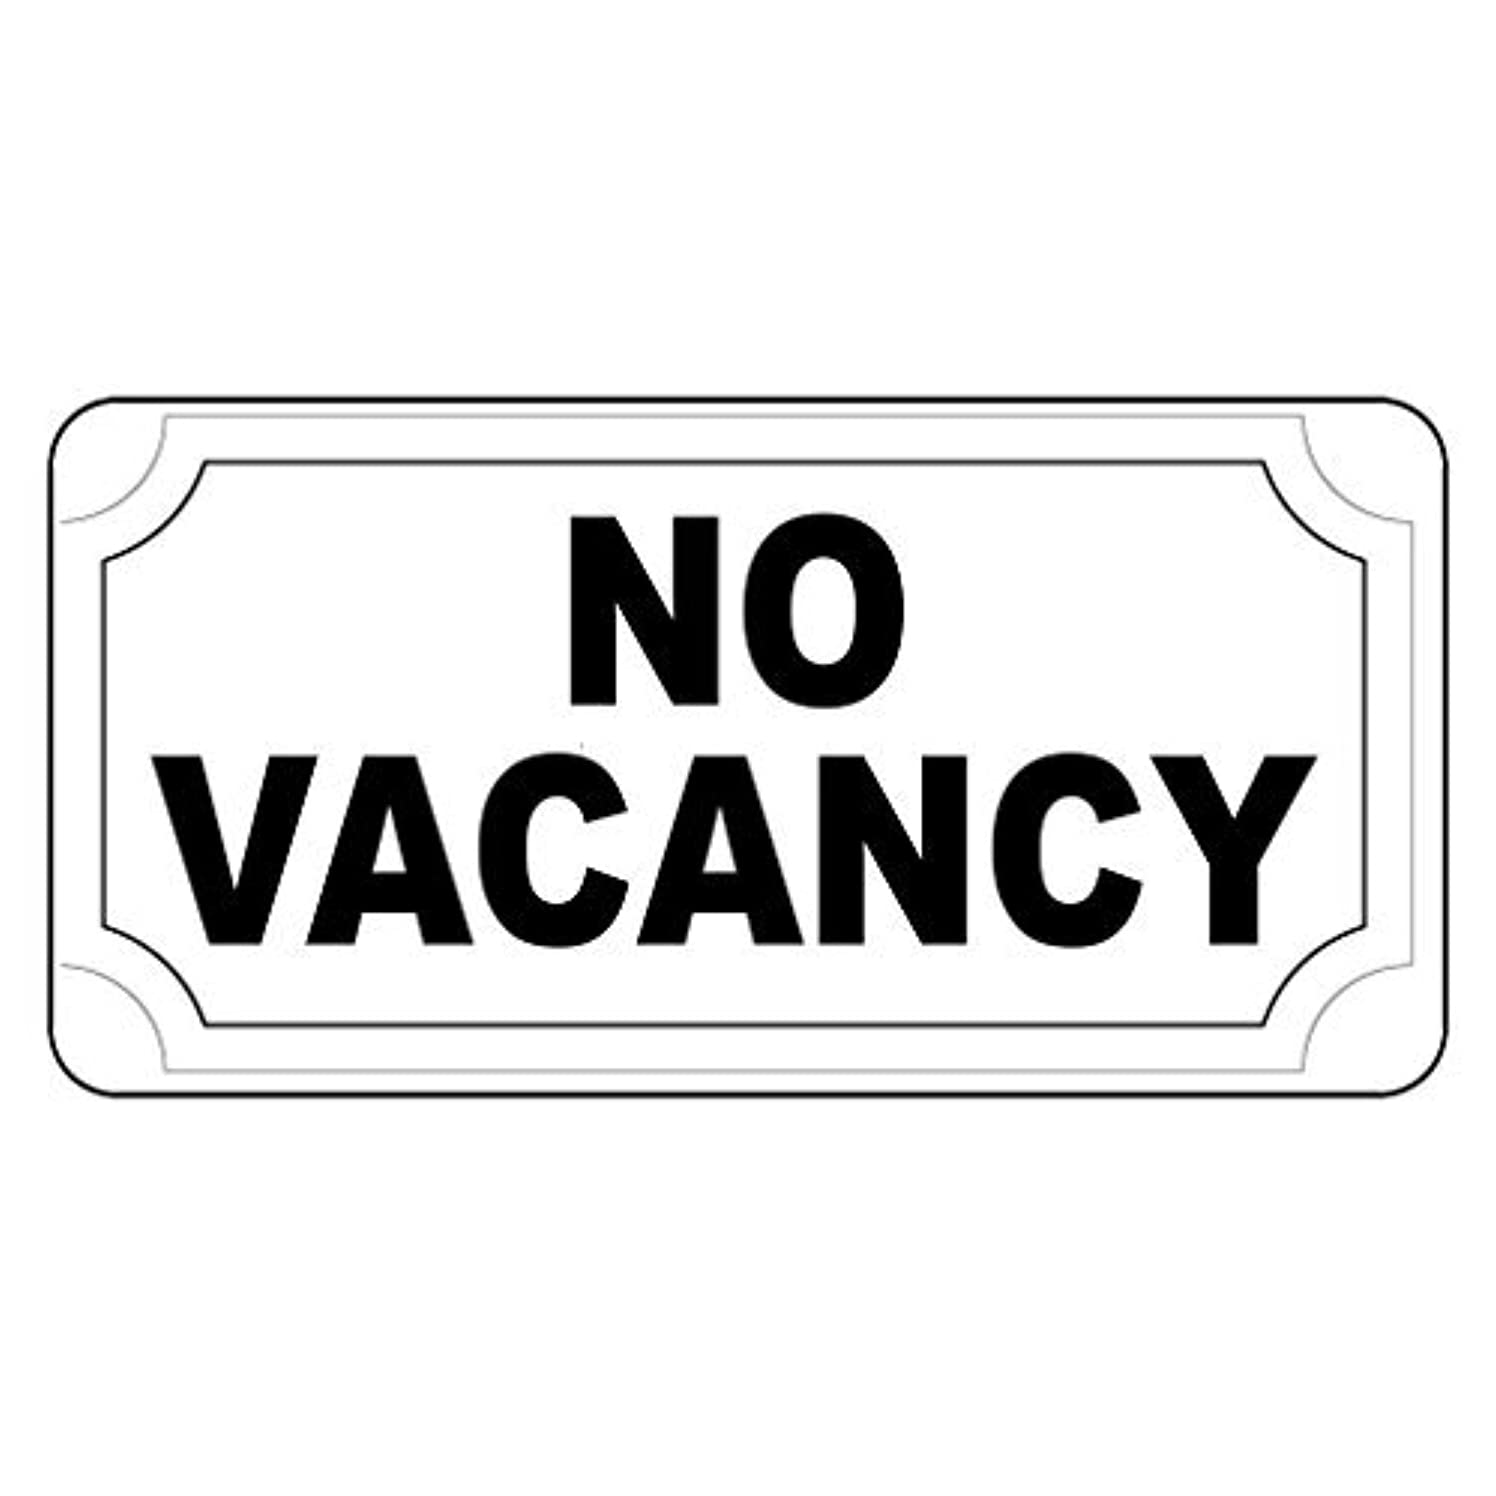 No Vacancy Black Retro Vintage Style Metal Sign - 8x12 inch With Holes